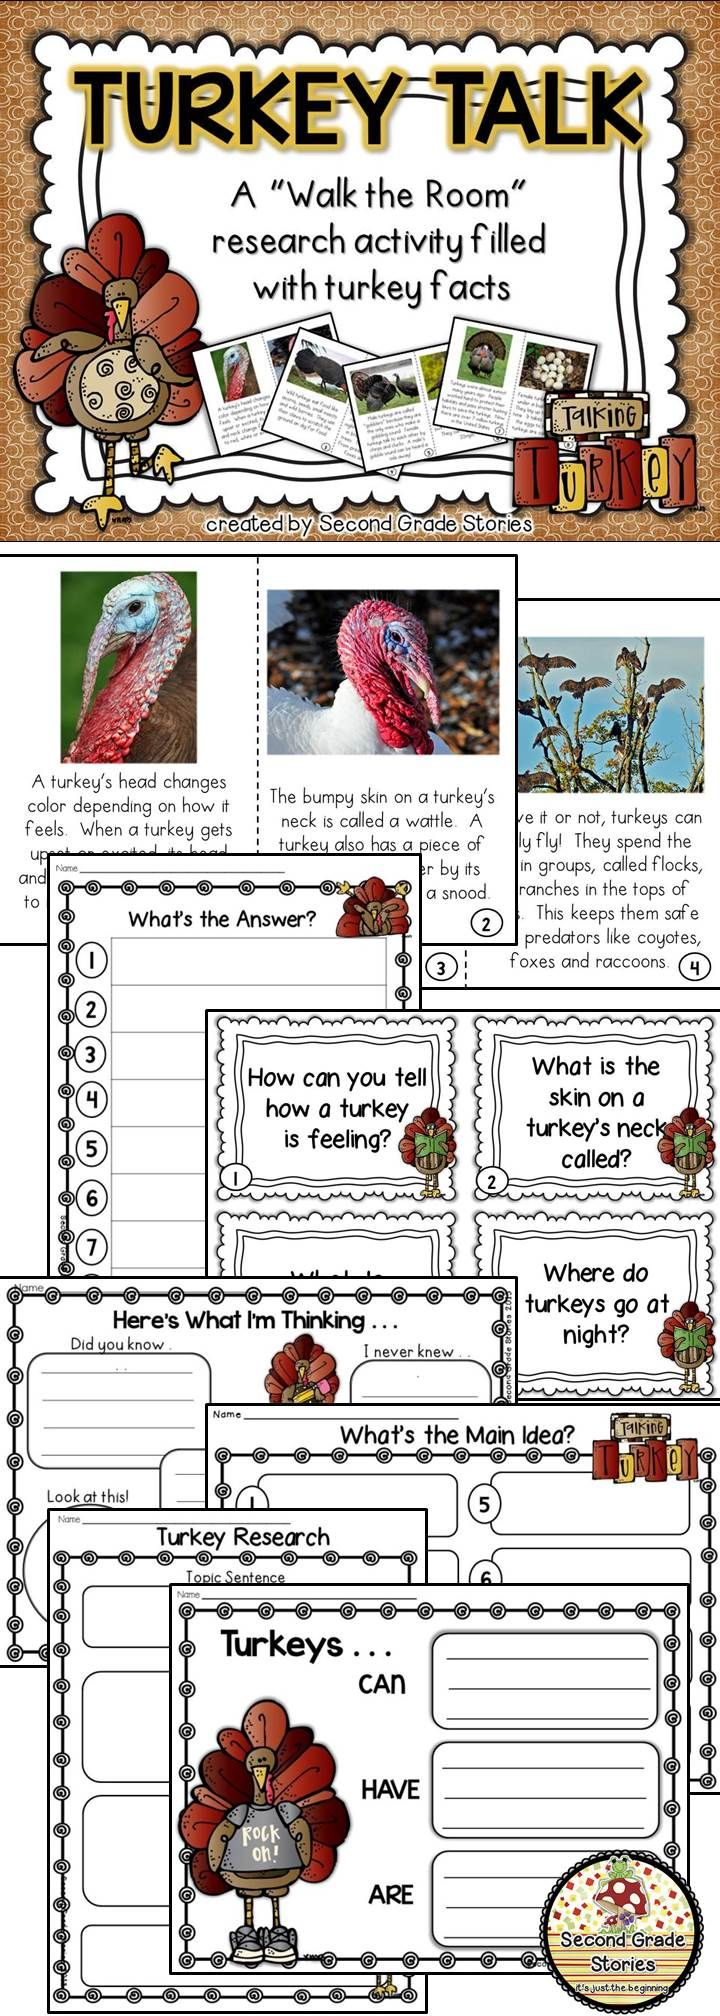 $ - great way to learn about turkeys; lots of different options for differentiation